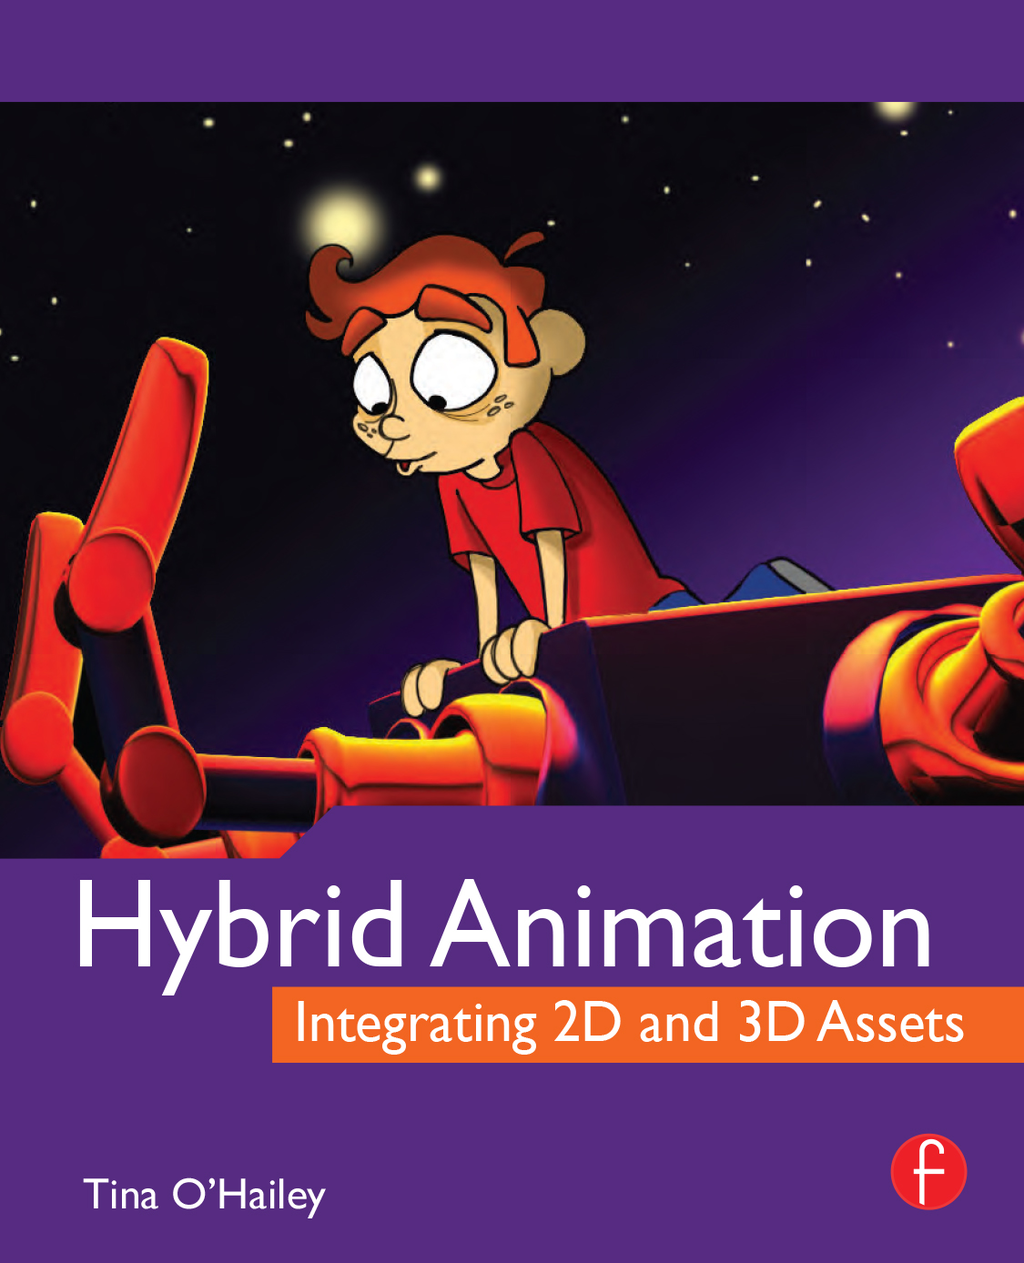 Hybrid Animation Integrating 2d and 3d Assets